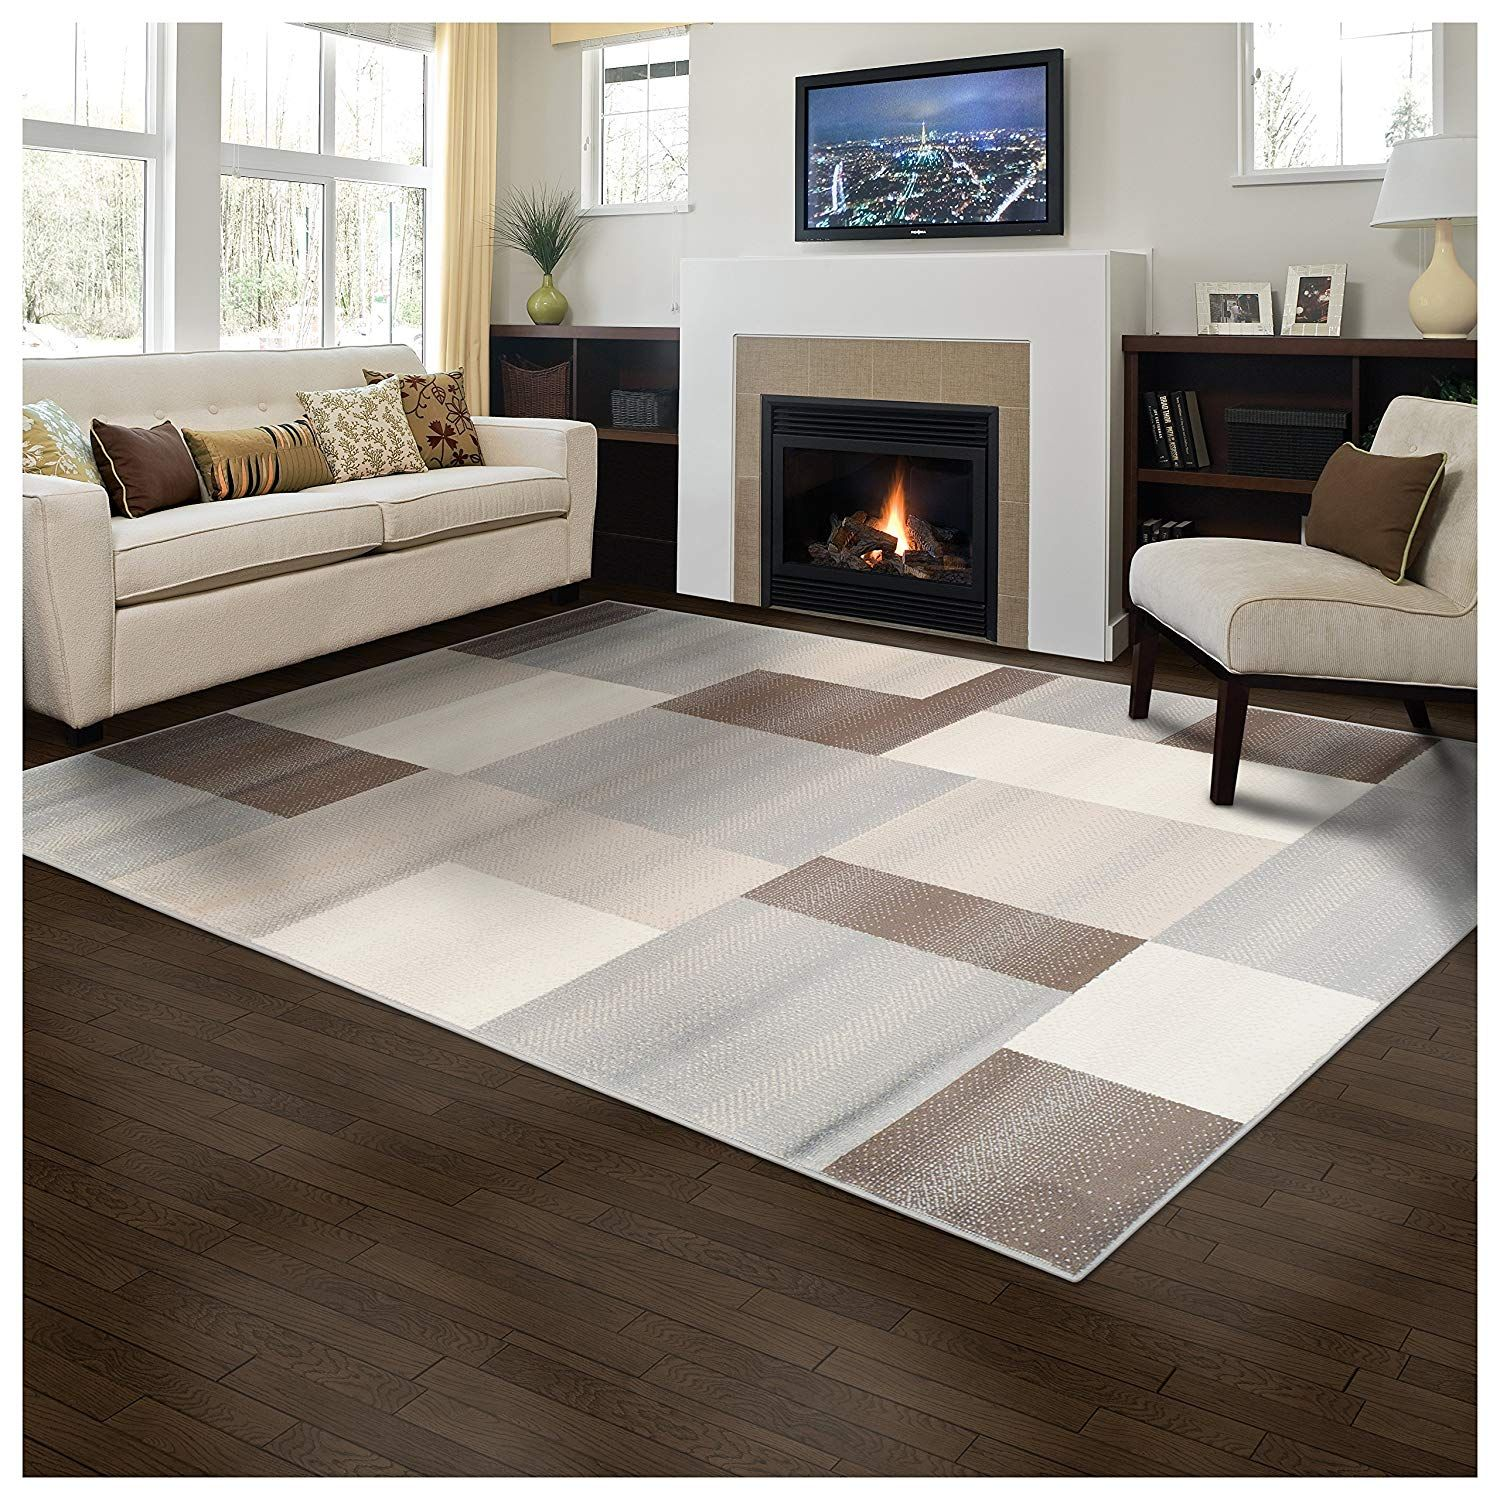 8x10 Area Rugs Under 100 This Is A Great Deal This Price Won T